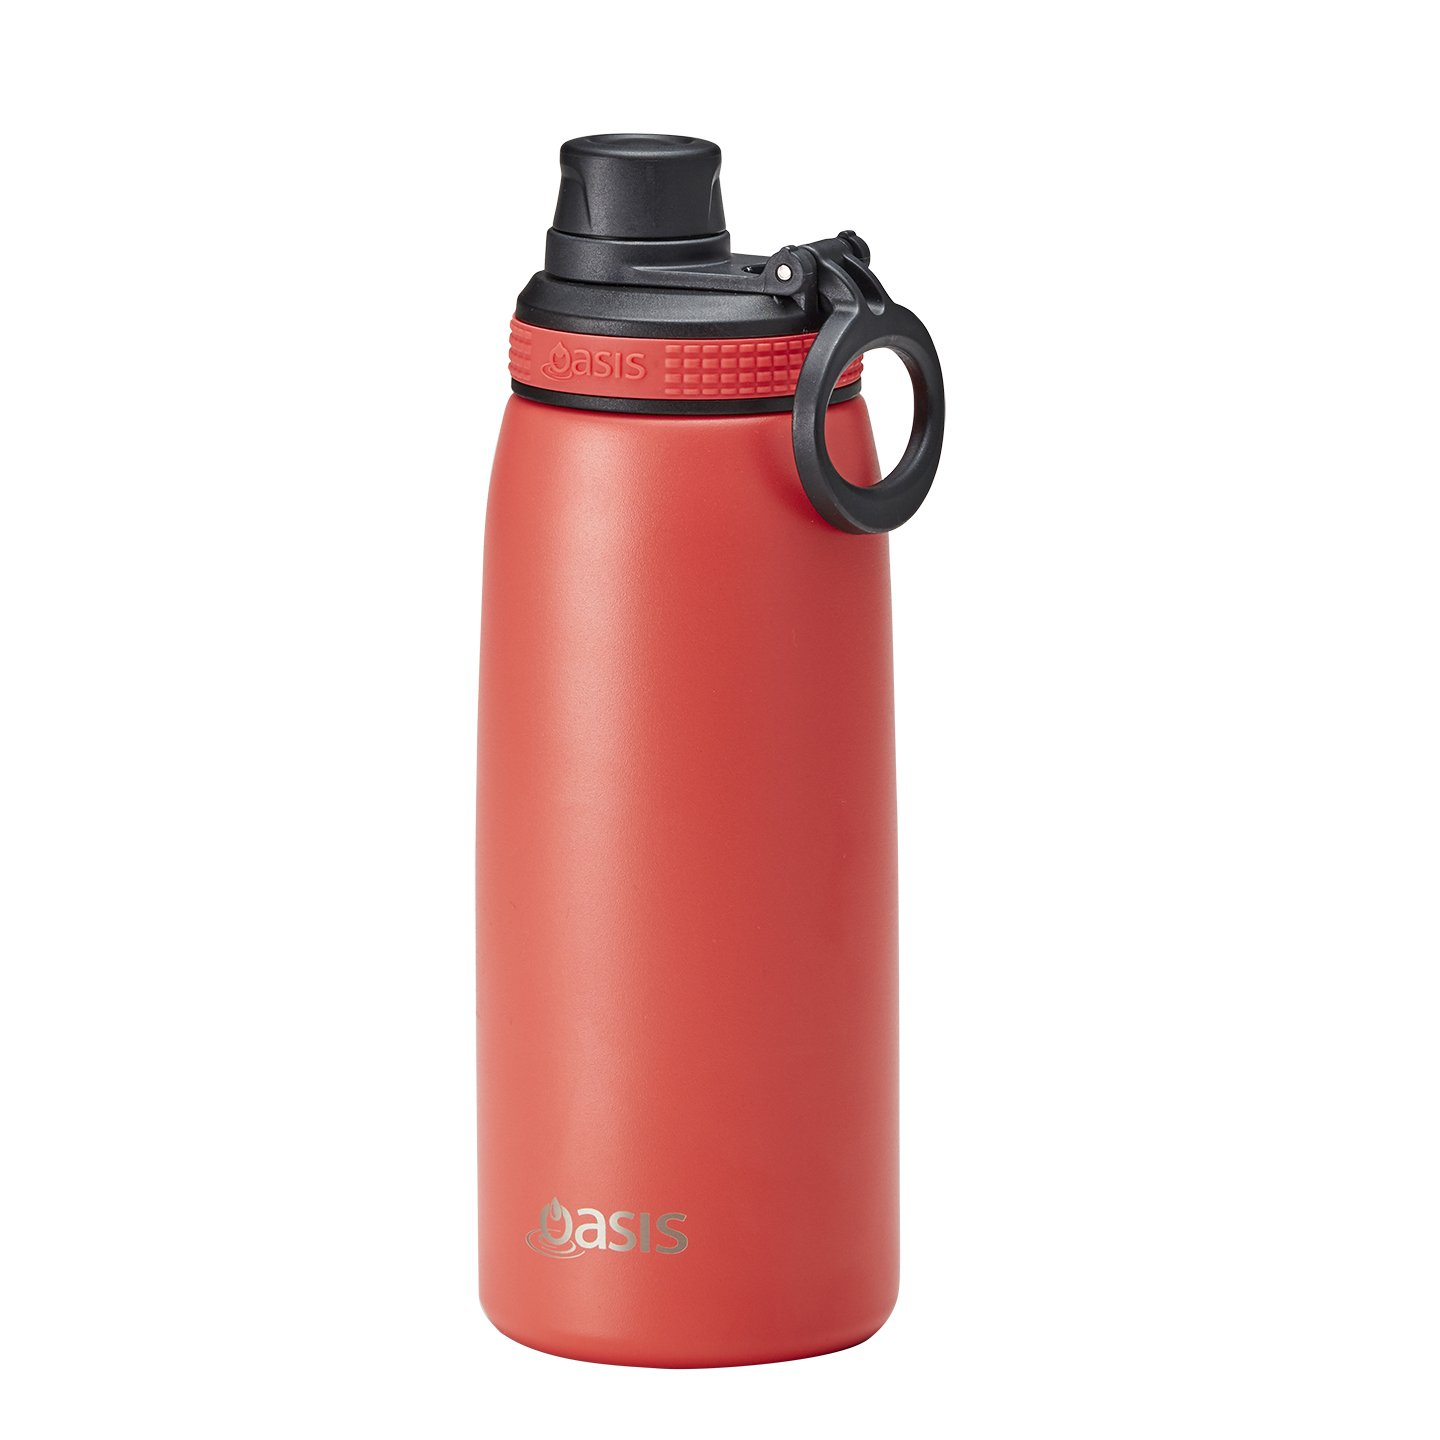 Oasis Coral Stainless Steel Sports Bottle